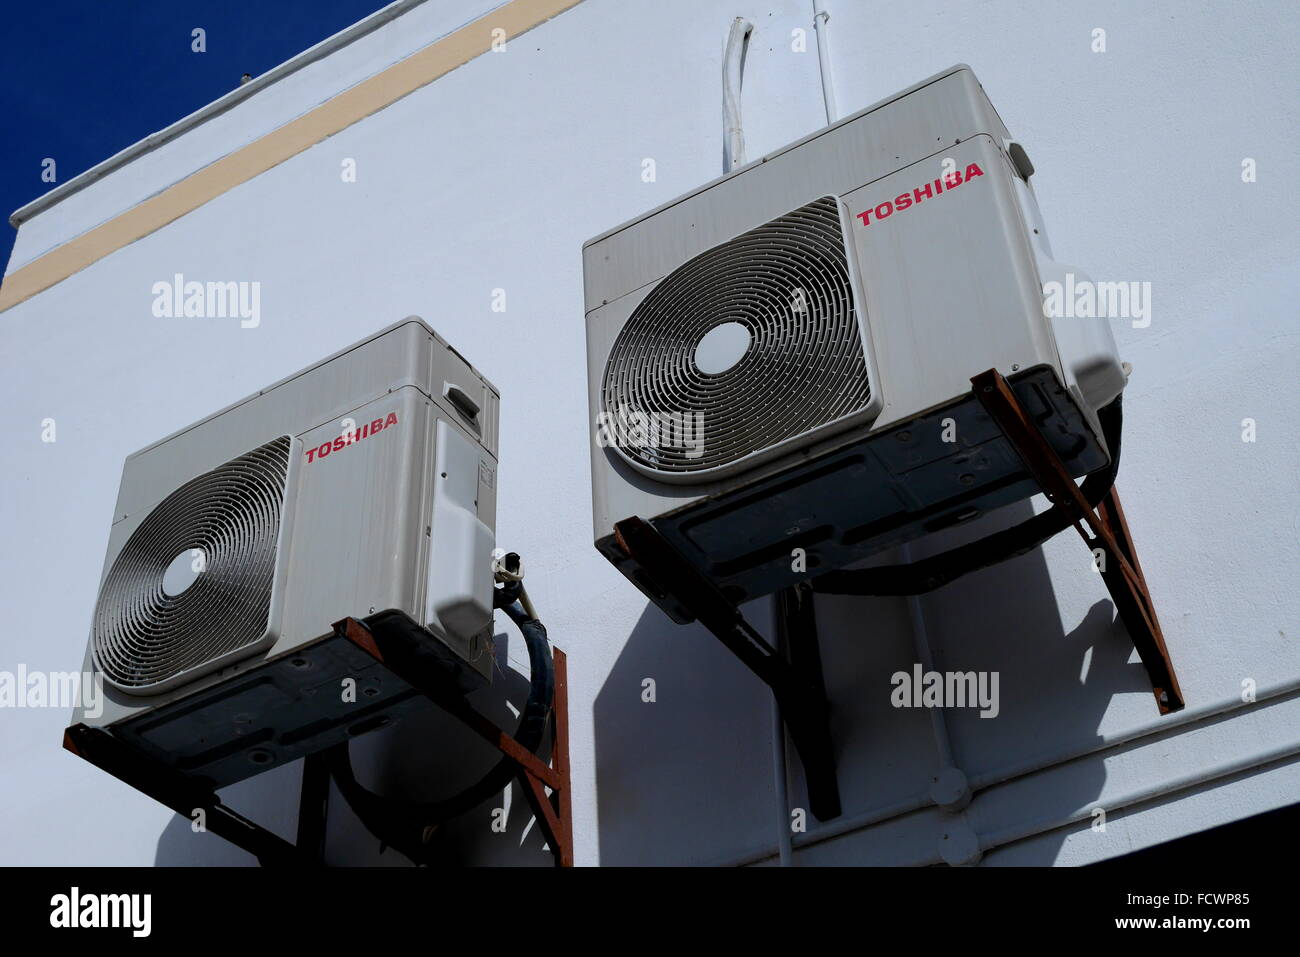 Air conditioning units on a house in the Kingdom of Bahrain - Stock Image